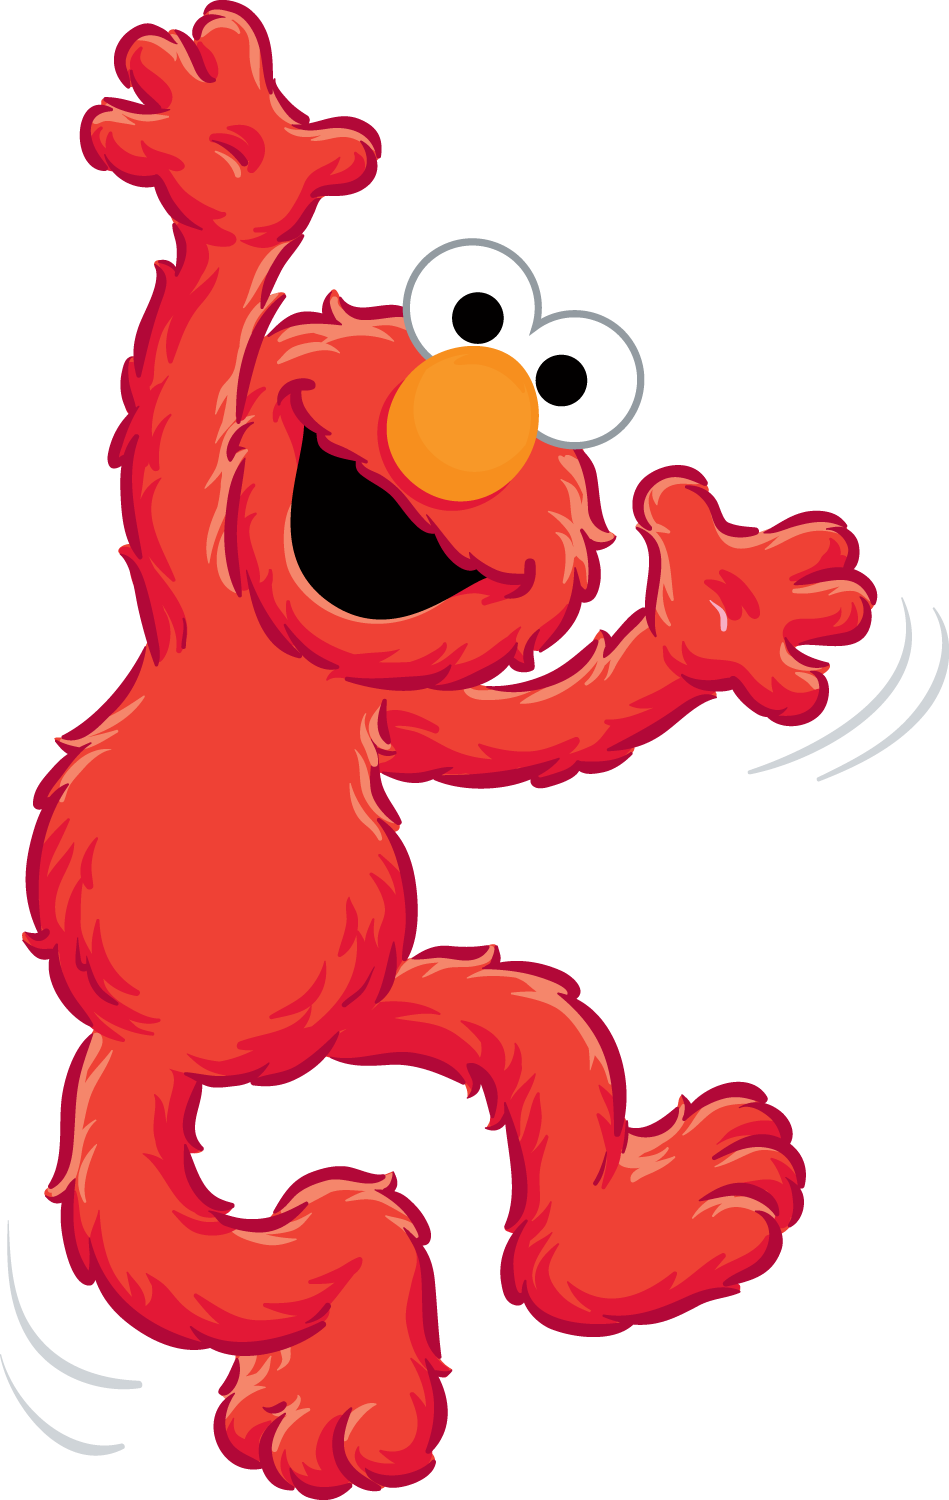 Elmo clipart.  images free cliparts clip free